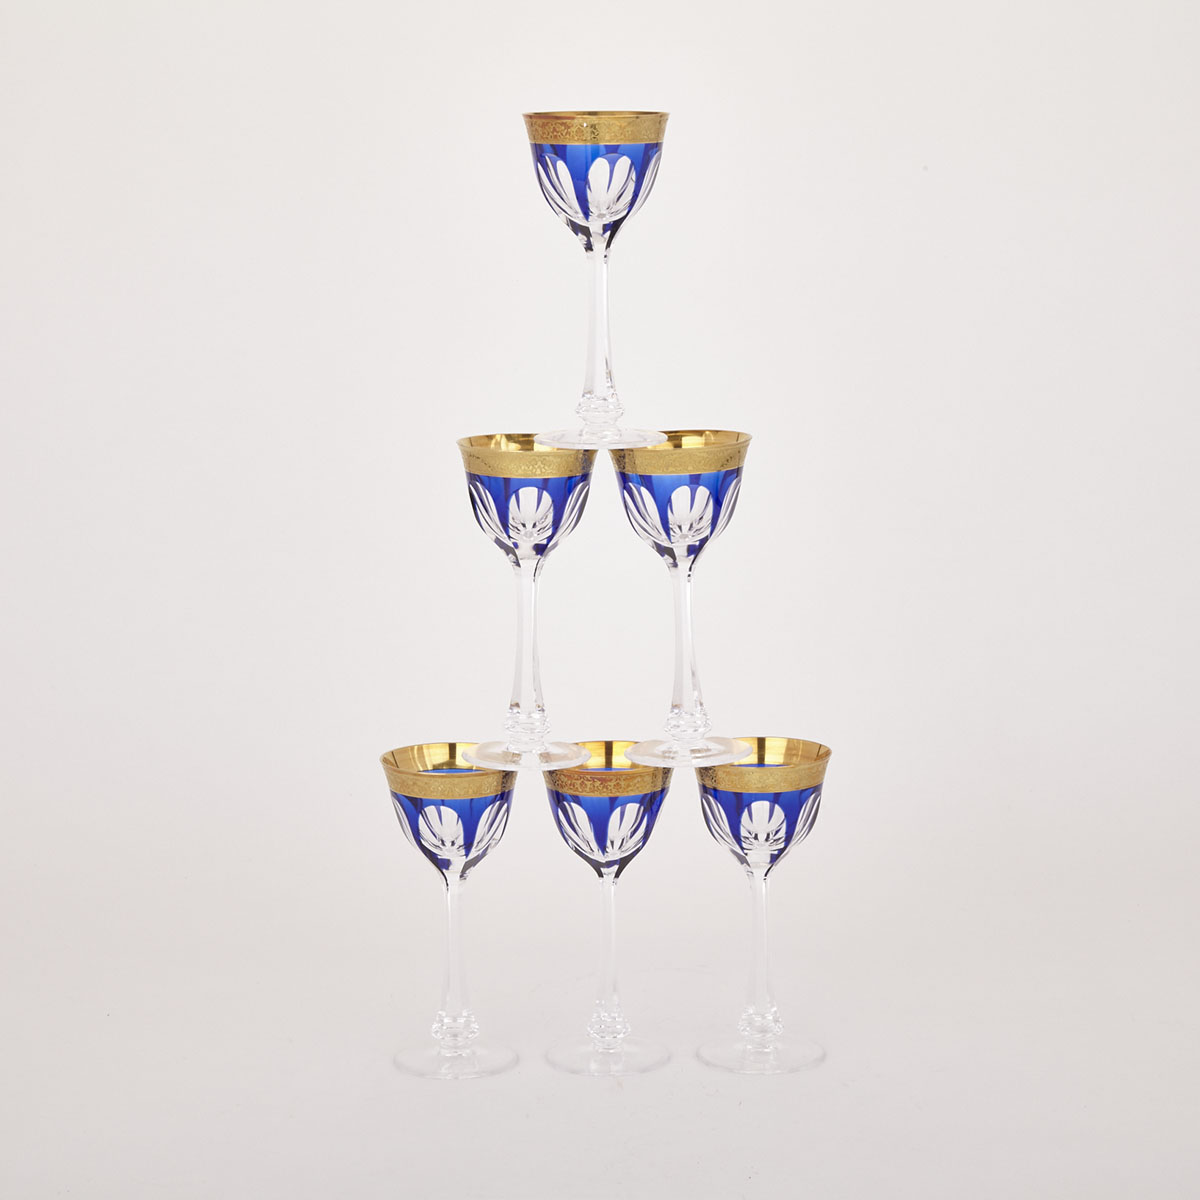 Six Moser Blue Overlaid, Cut, Etched and Gilt Glass Wine Goblets, 20th century